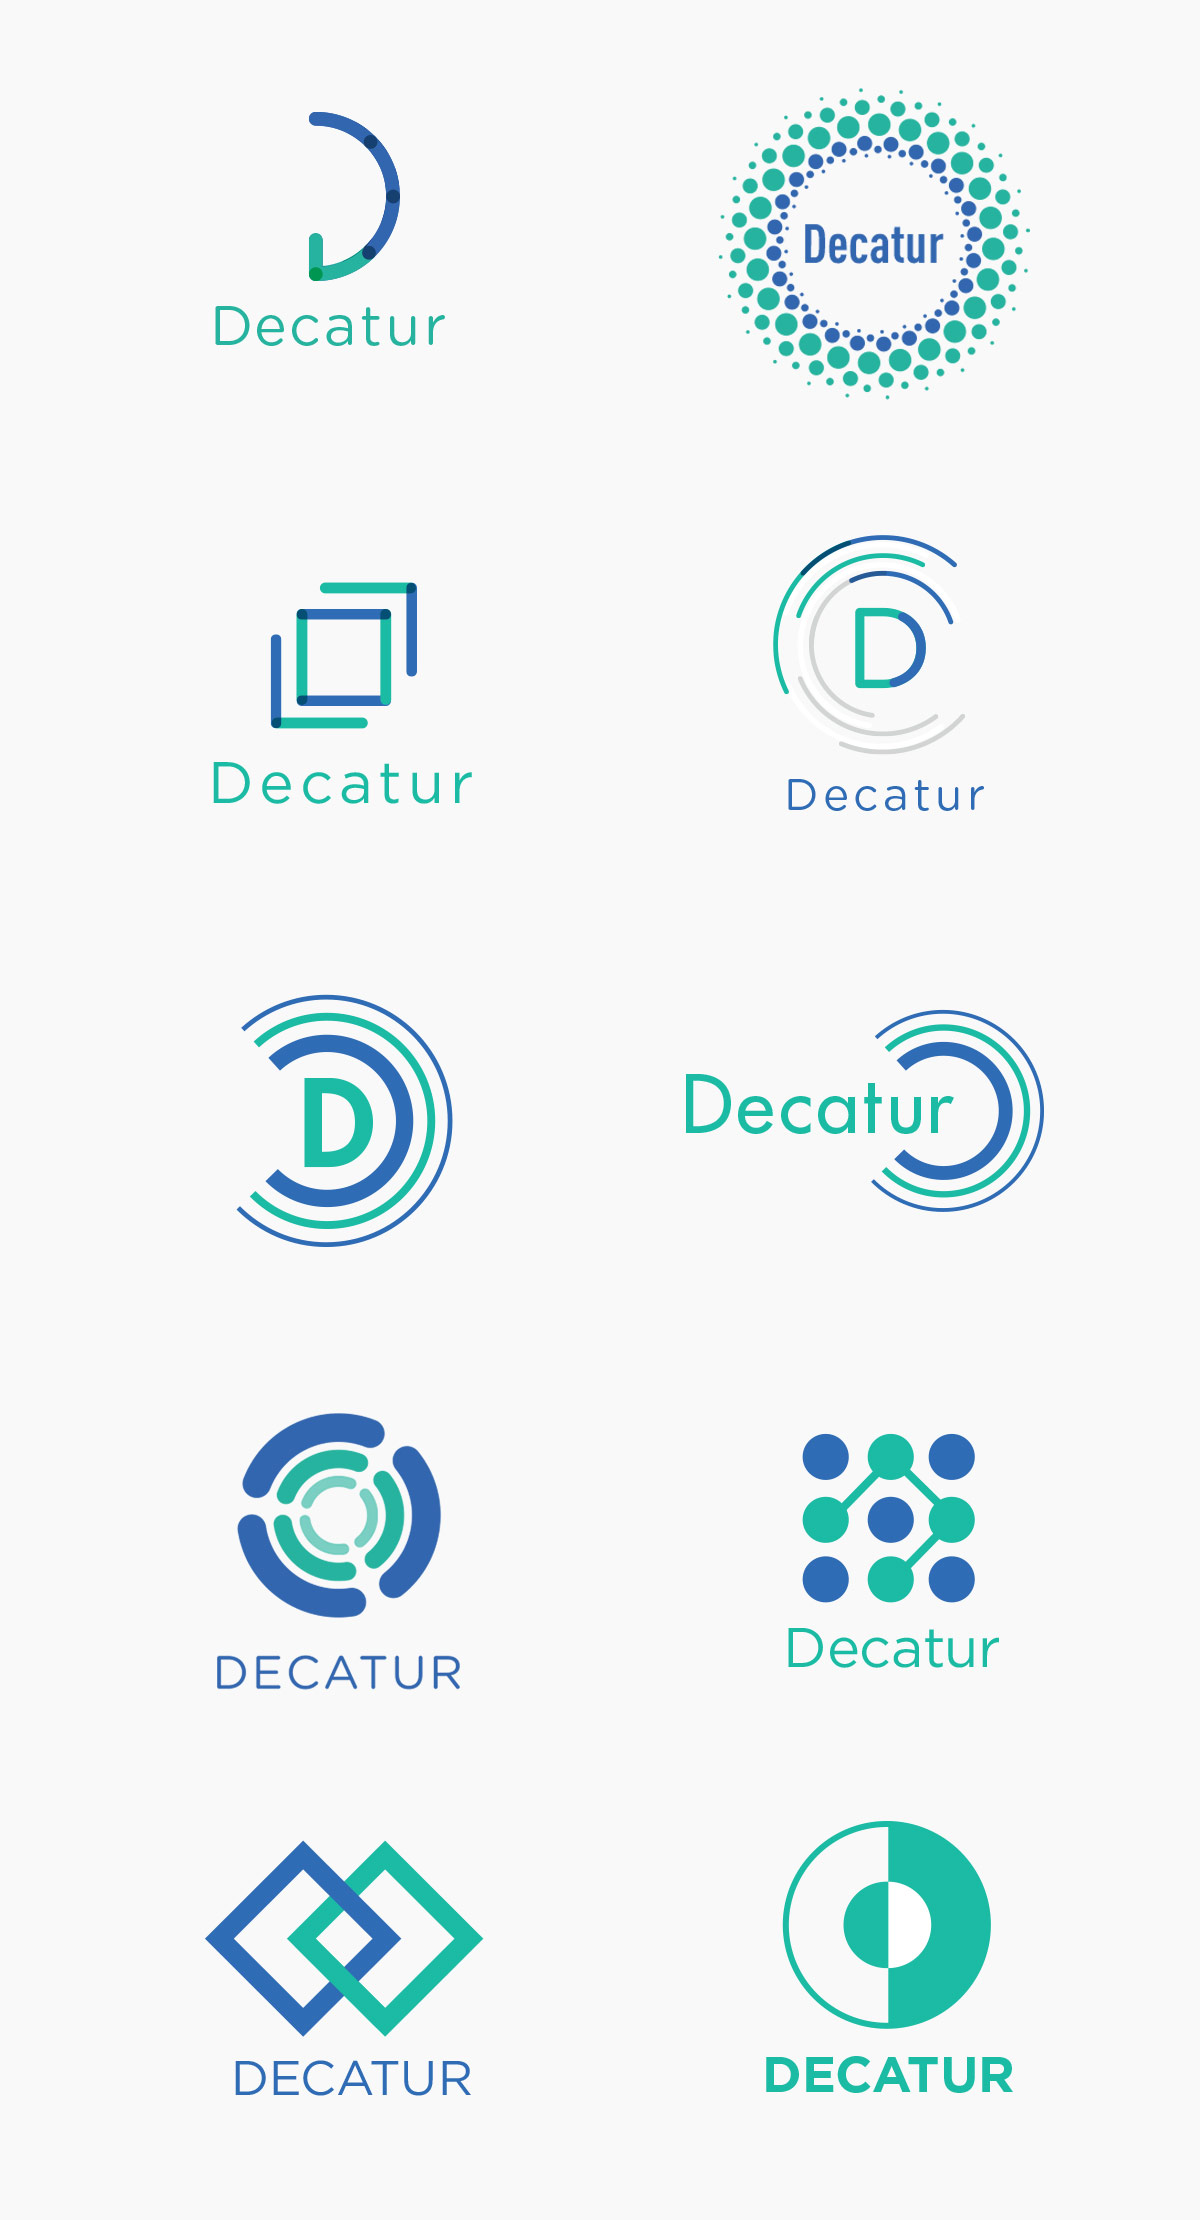 Decatur logotype by Sabine Handtke